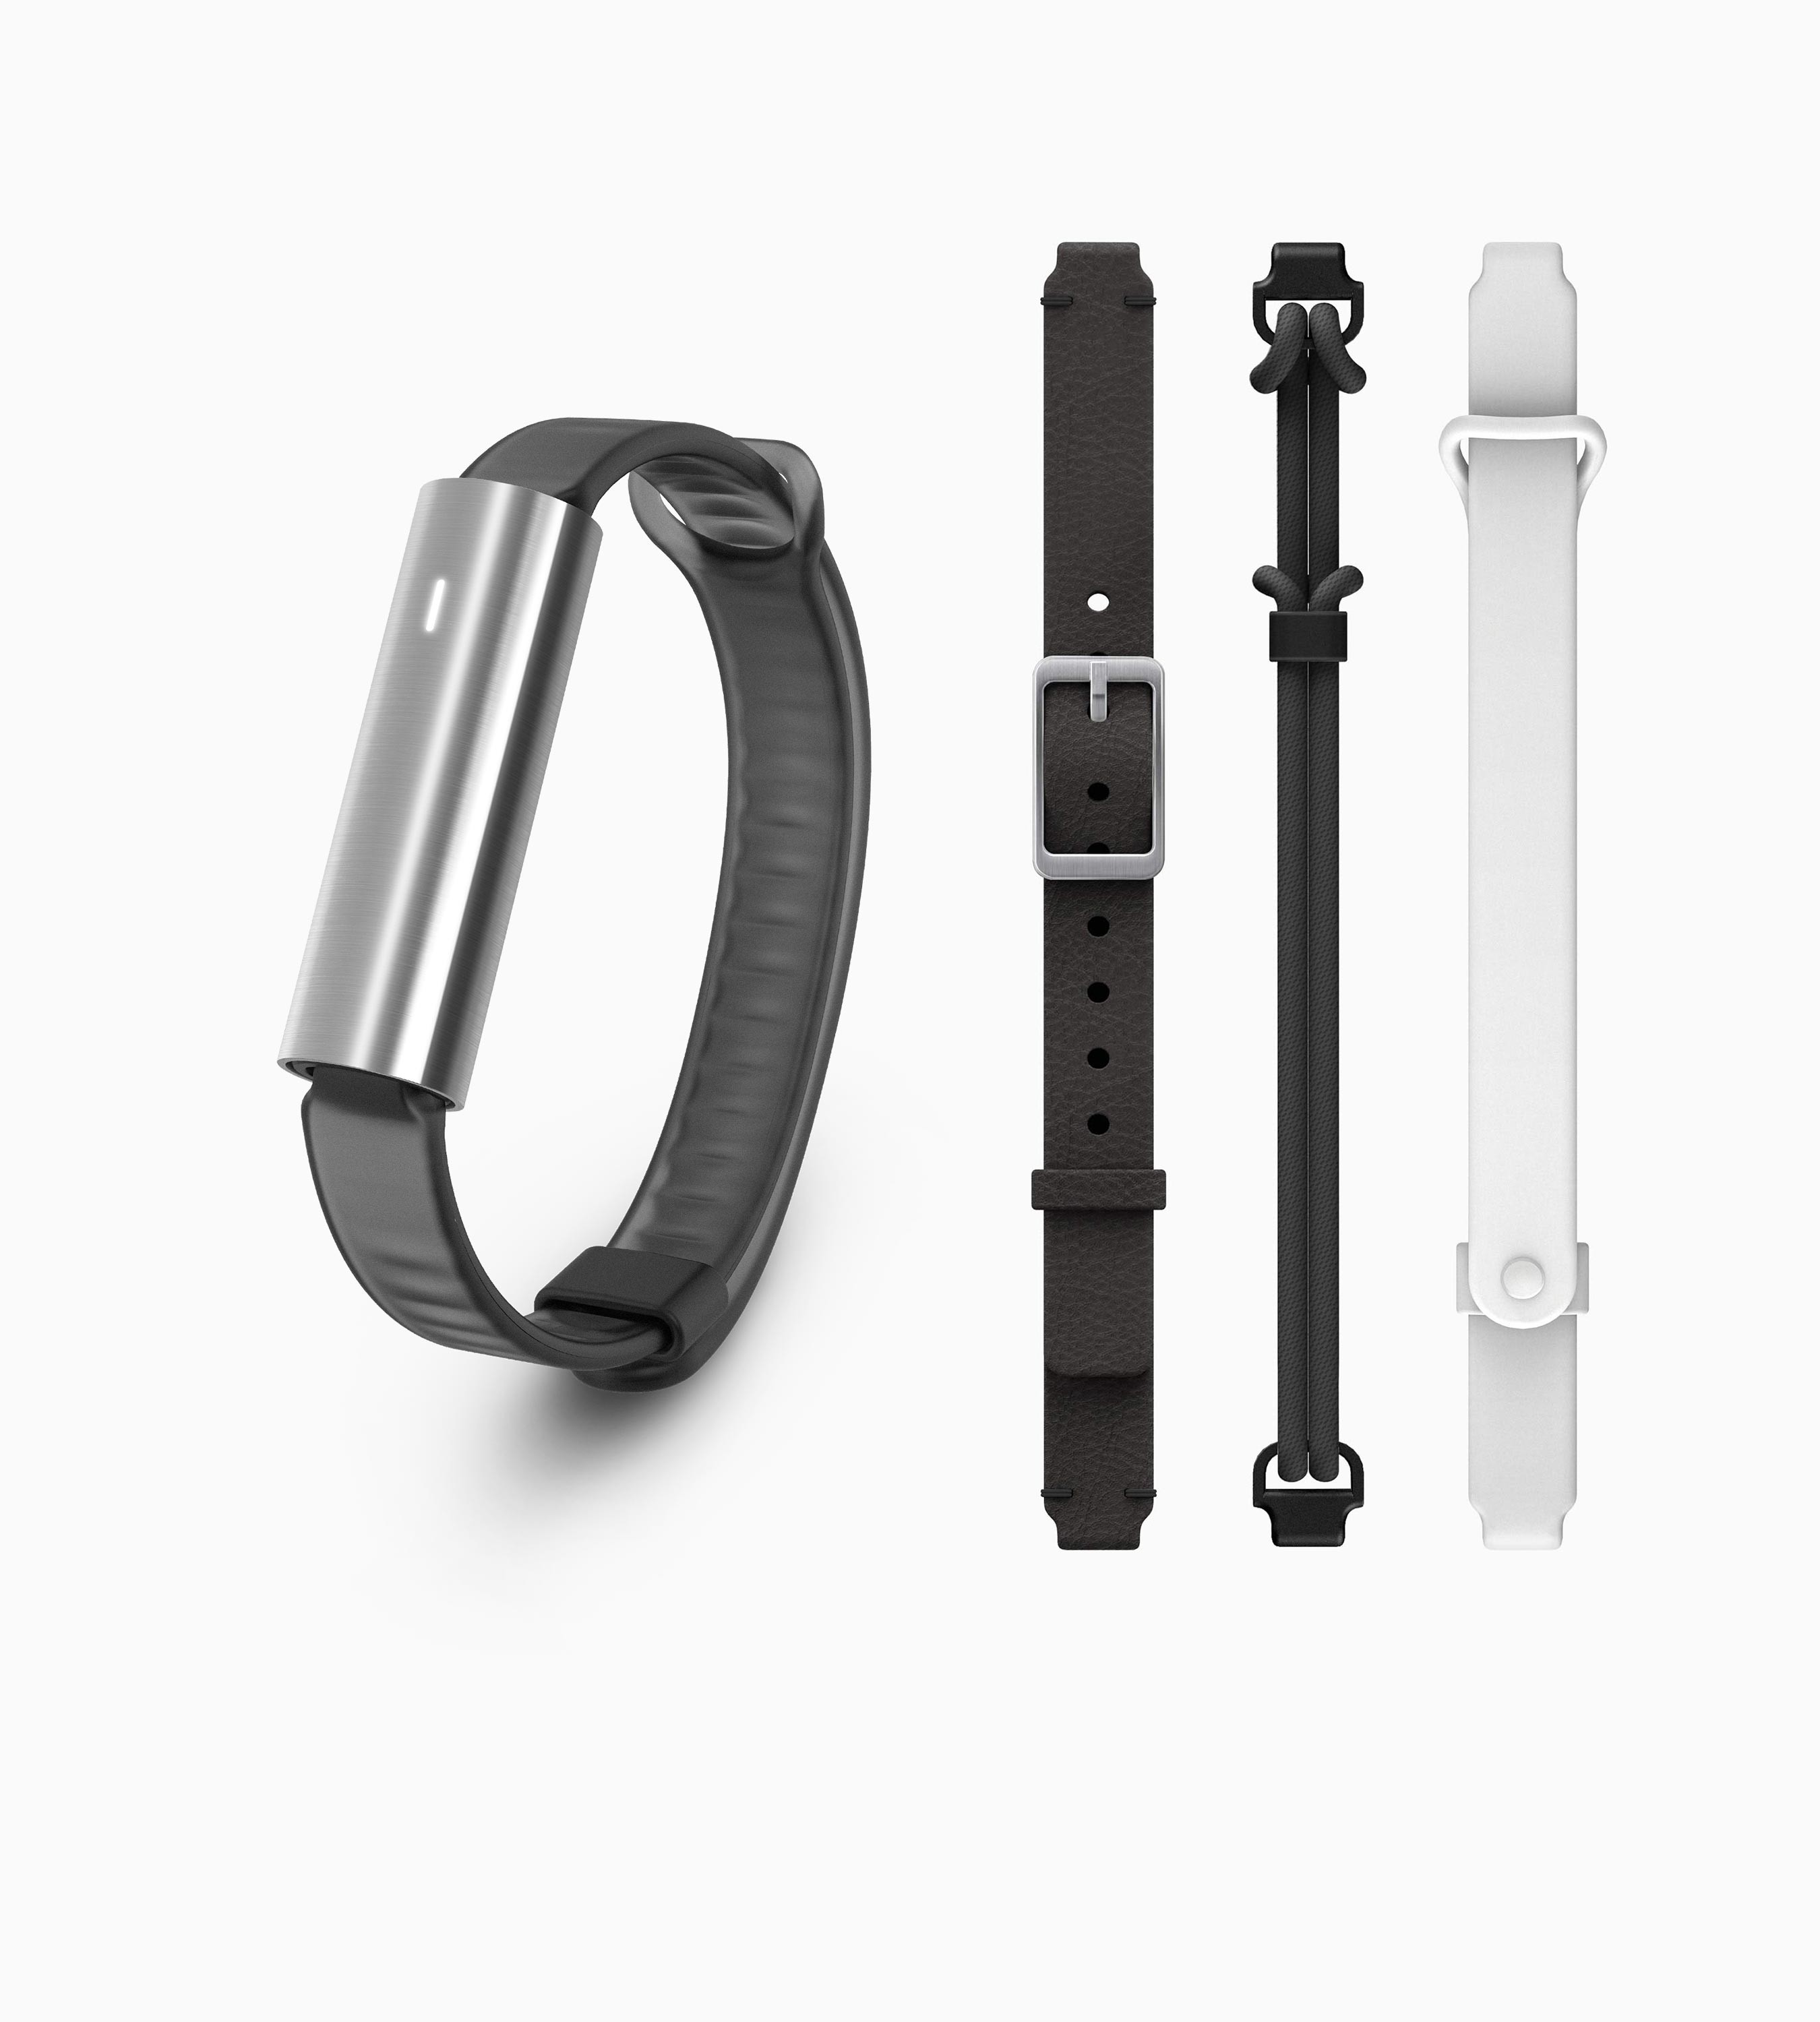 Misfit Ray + Accessory Pack Bundle